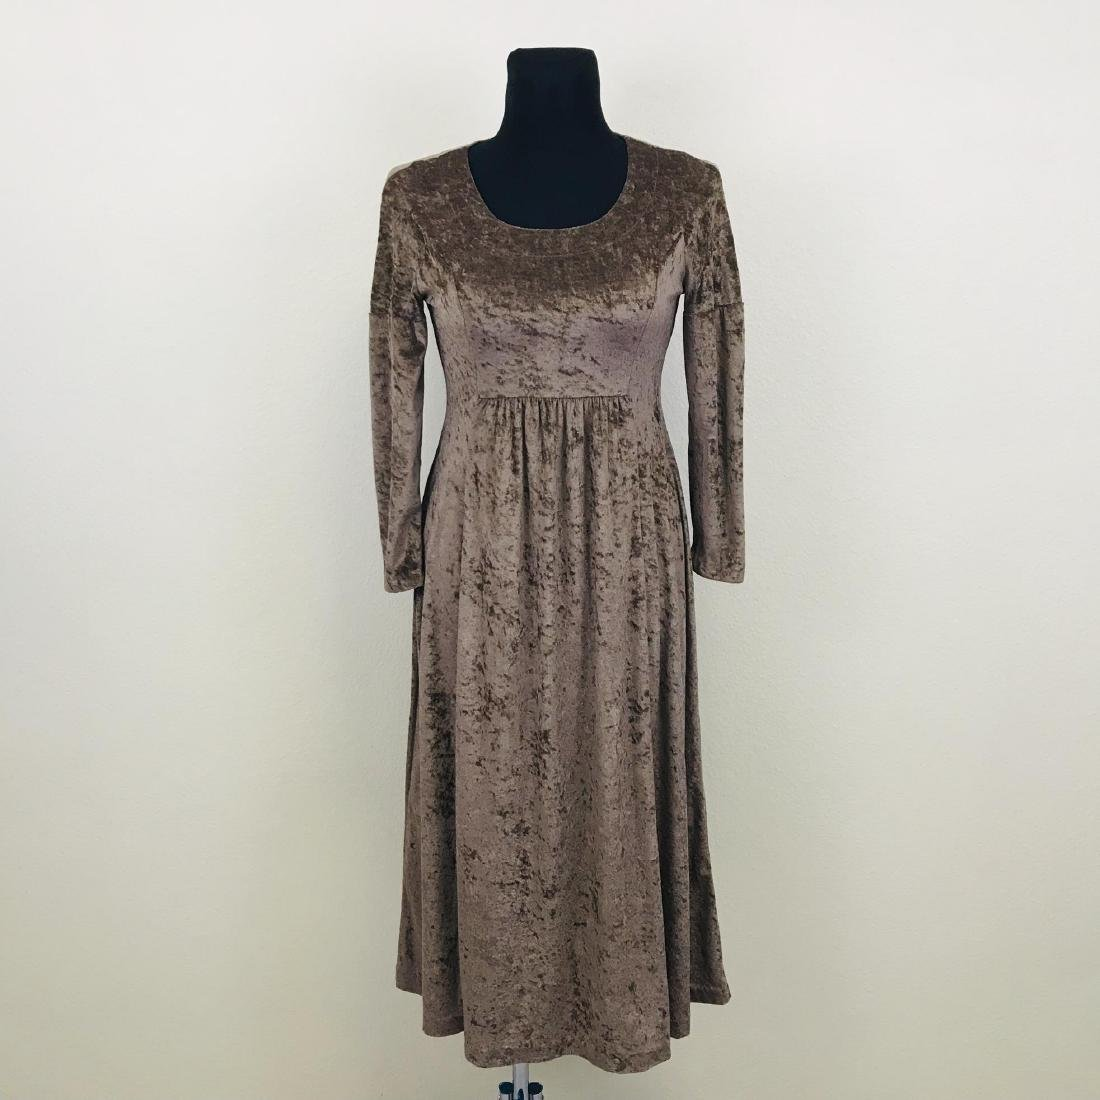 Vintage Women's Evening Dress